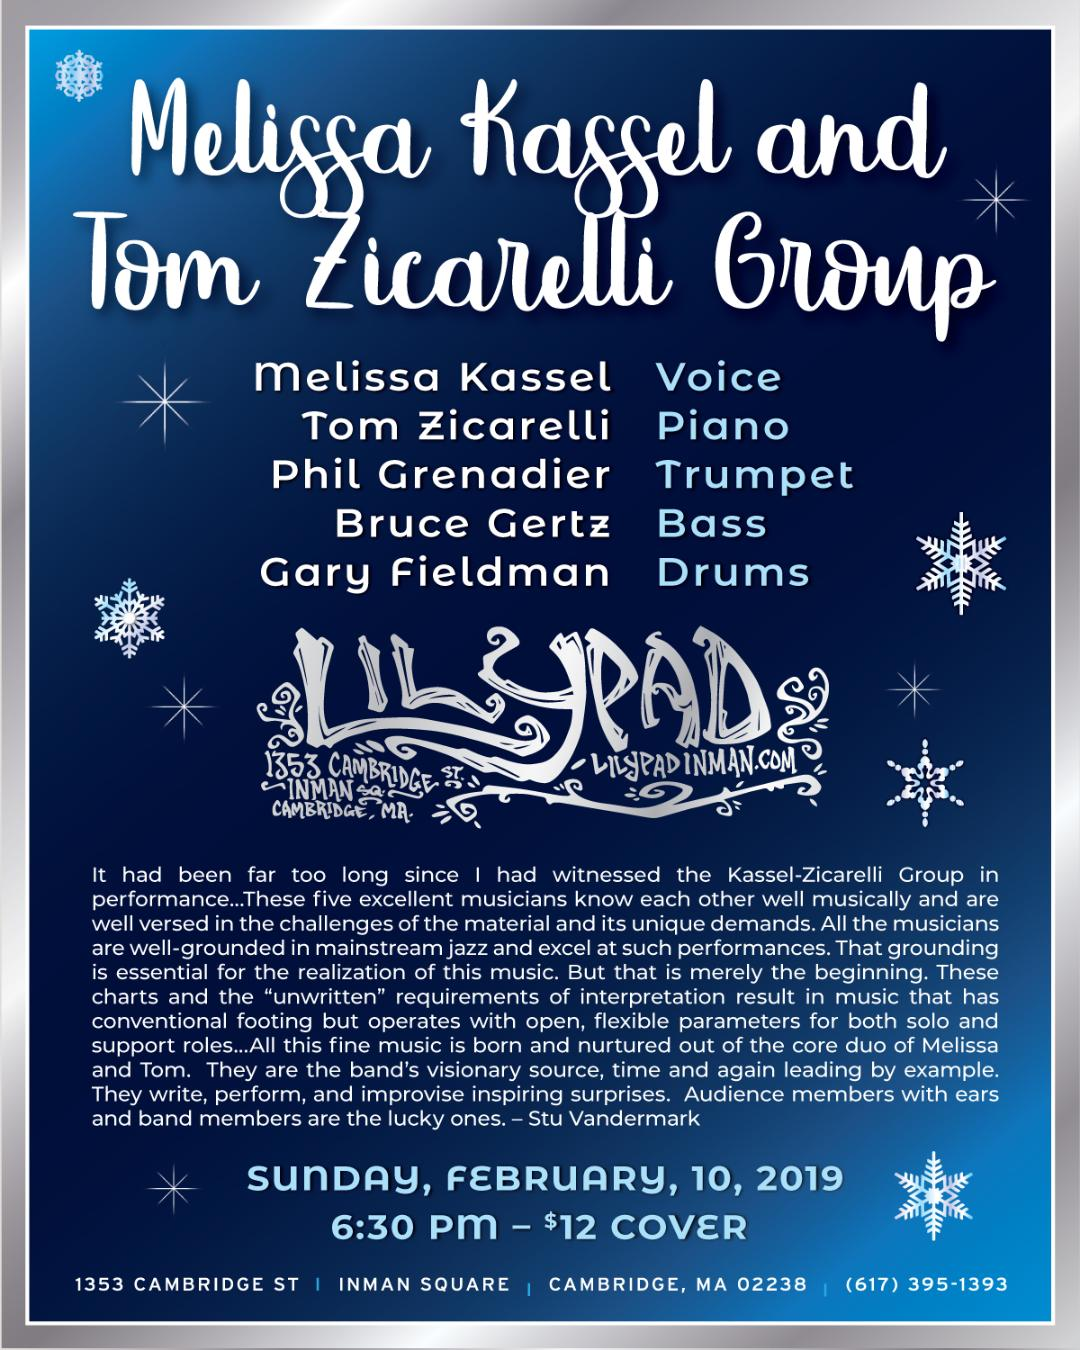 Melissa Kassel & Tom Zicarelli Group